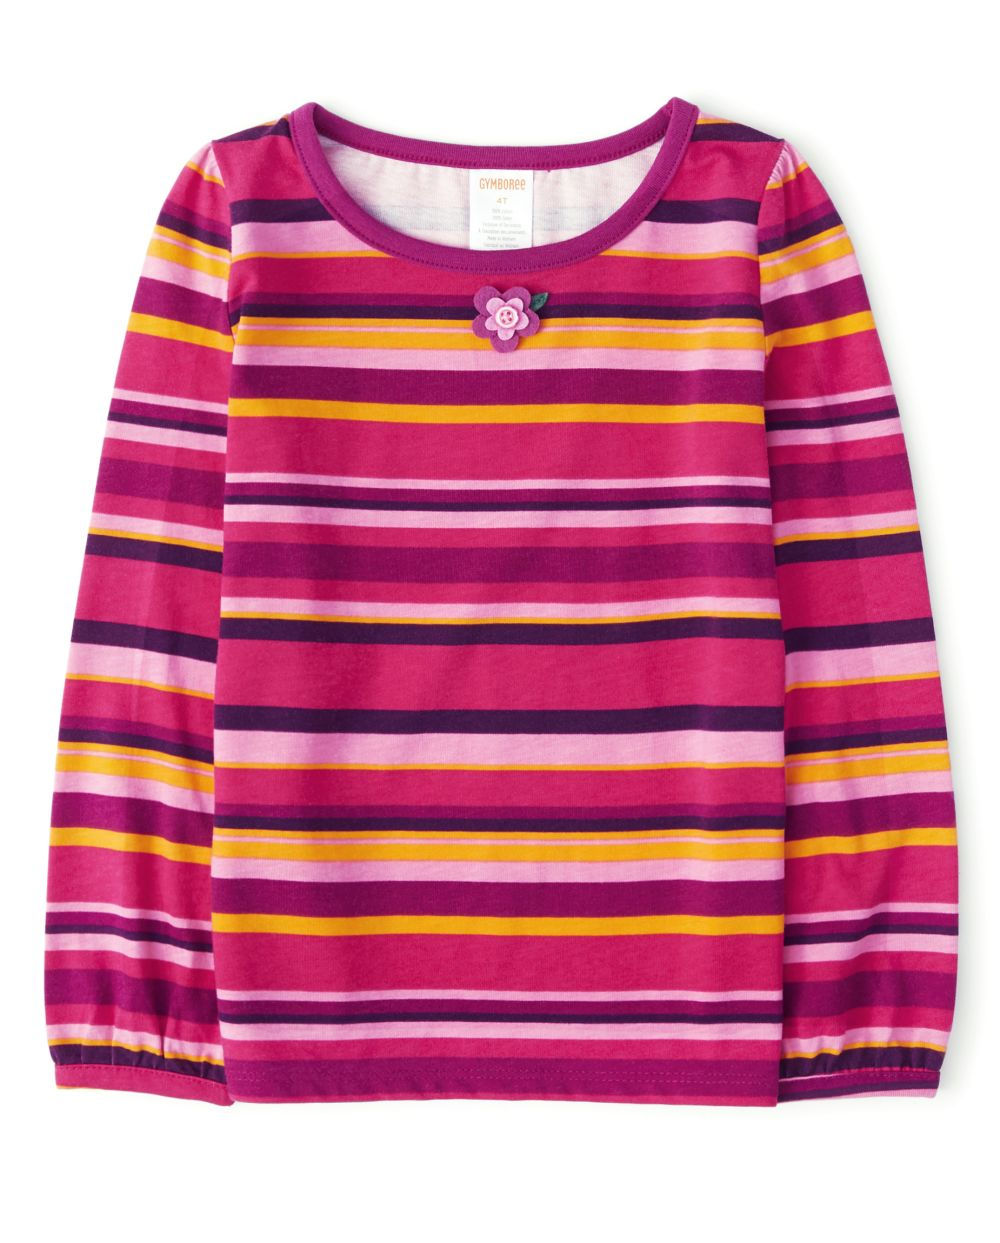 Girls Applique Flowers Striped Top - Berry Cute